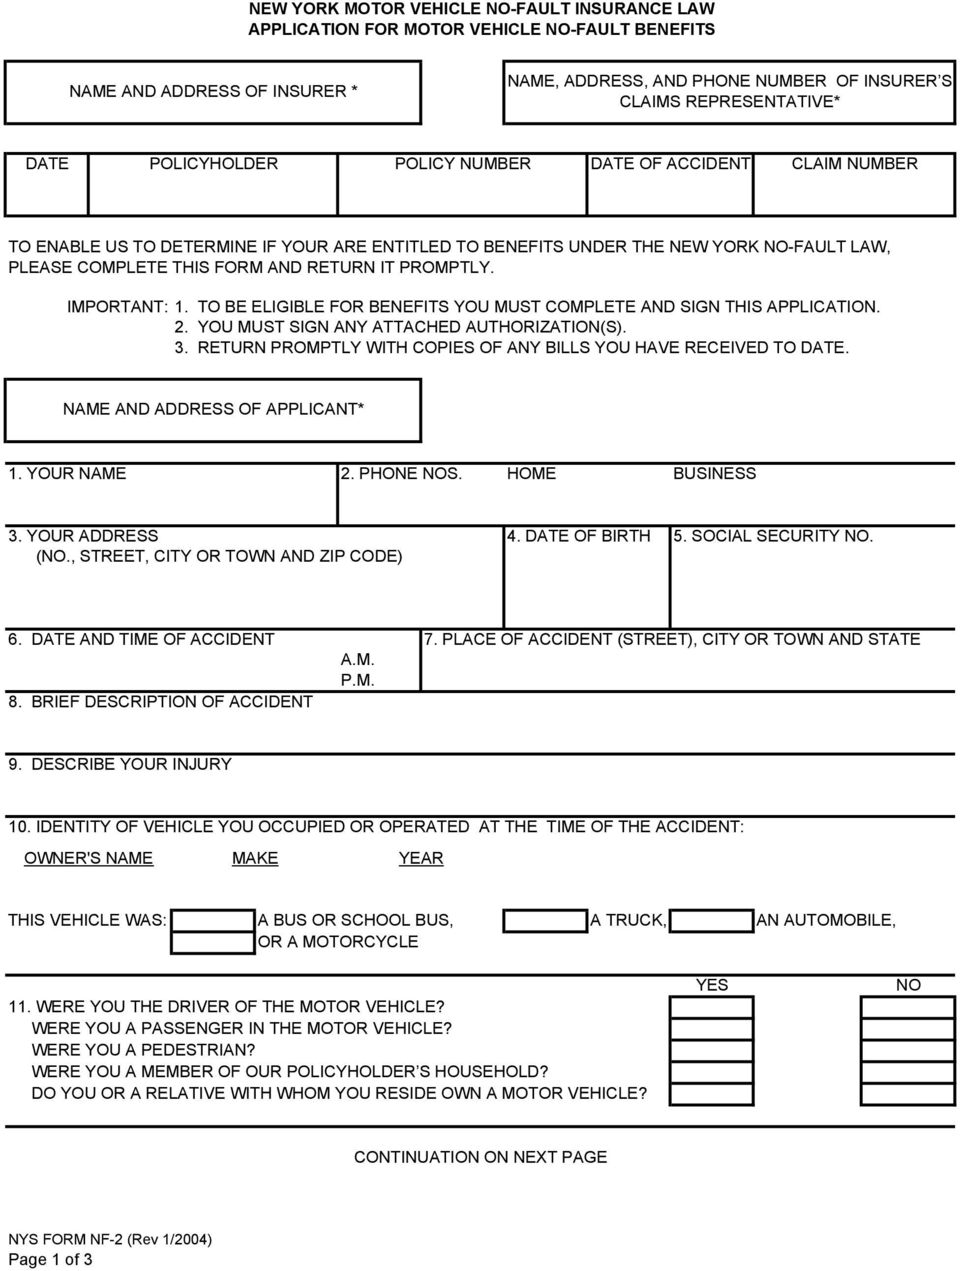 IMPORTANT: 1. TO BE ELIGIBLE FOR BENEFITS YOU MUST COMPLETE AND SIGN THIS APPLICATION. 2. YOU MUST SIGN ANY ATTACHED AUTHORIZATION(S). 3. RETURN PROMPTLY WITH COPIES OF ANY BILLS YOU HAVE RECEIVED TO.